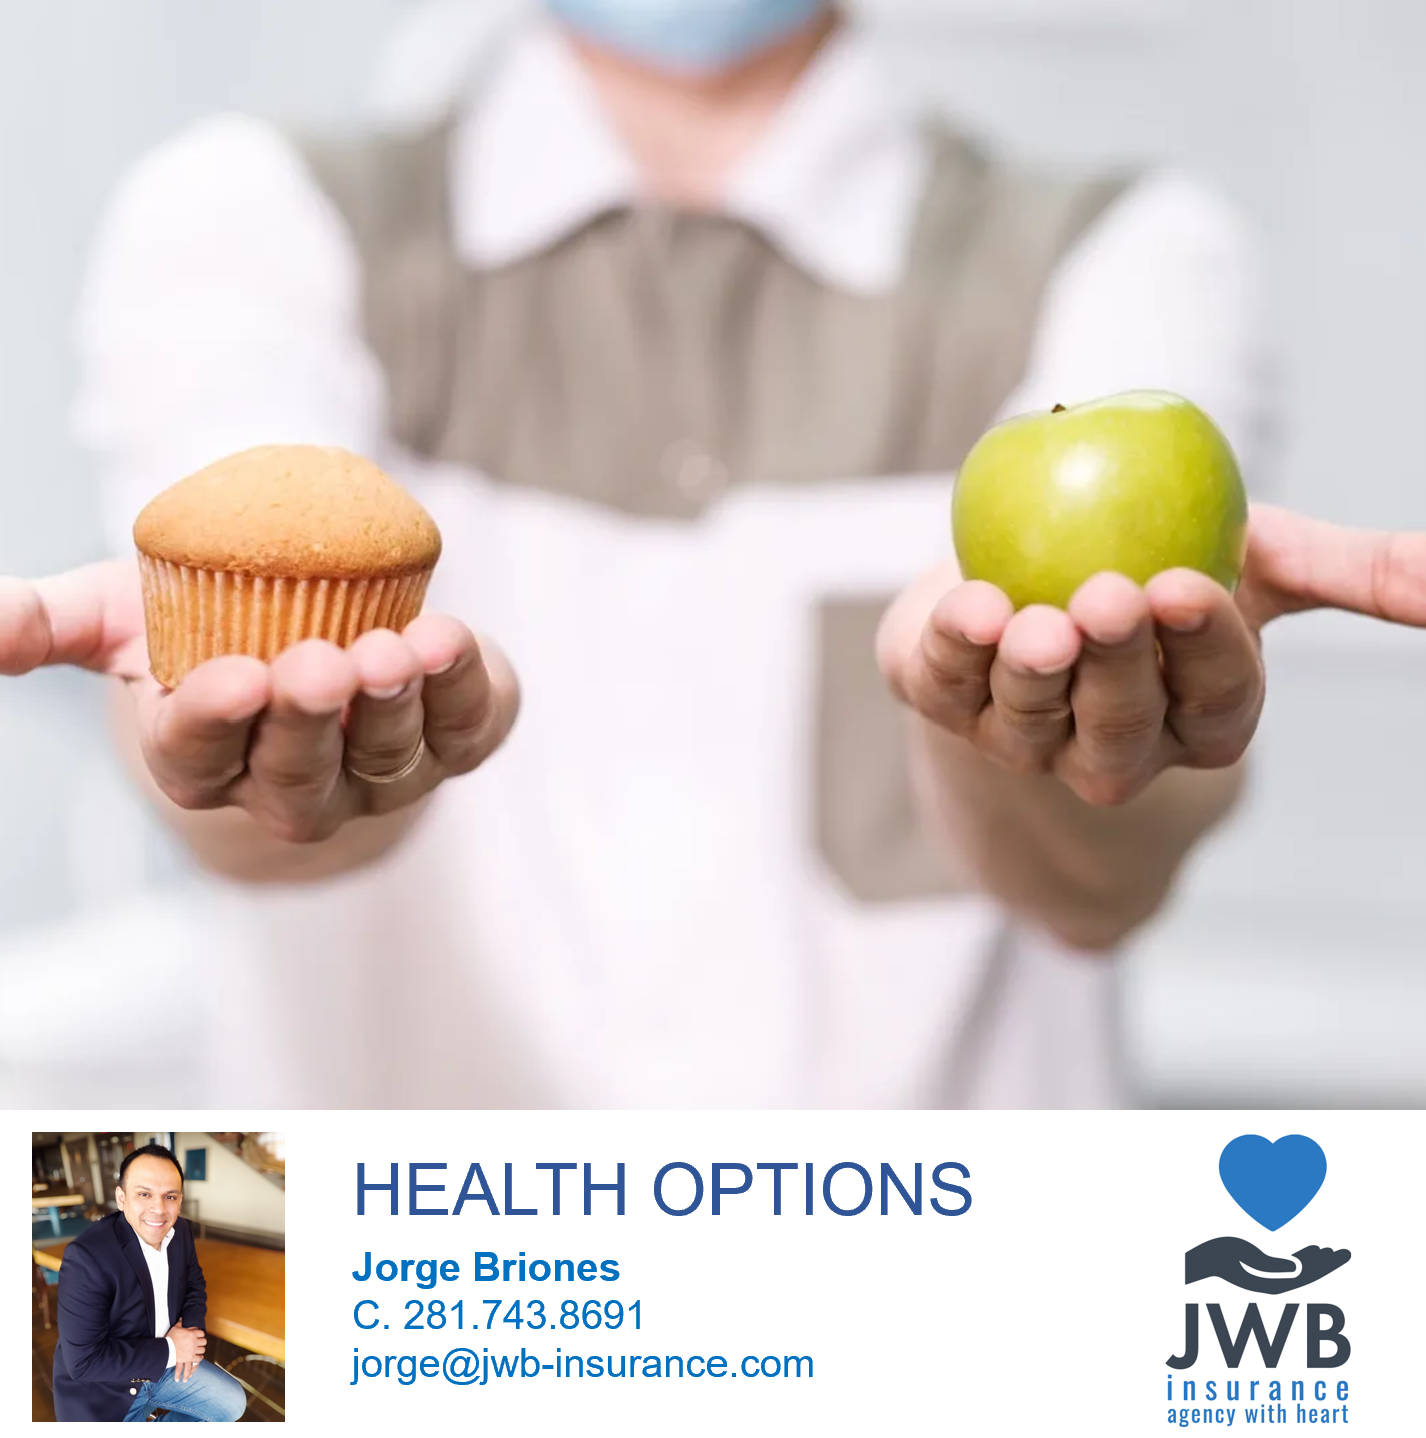 Health Options